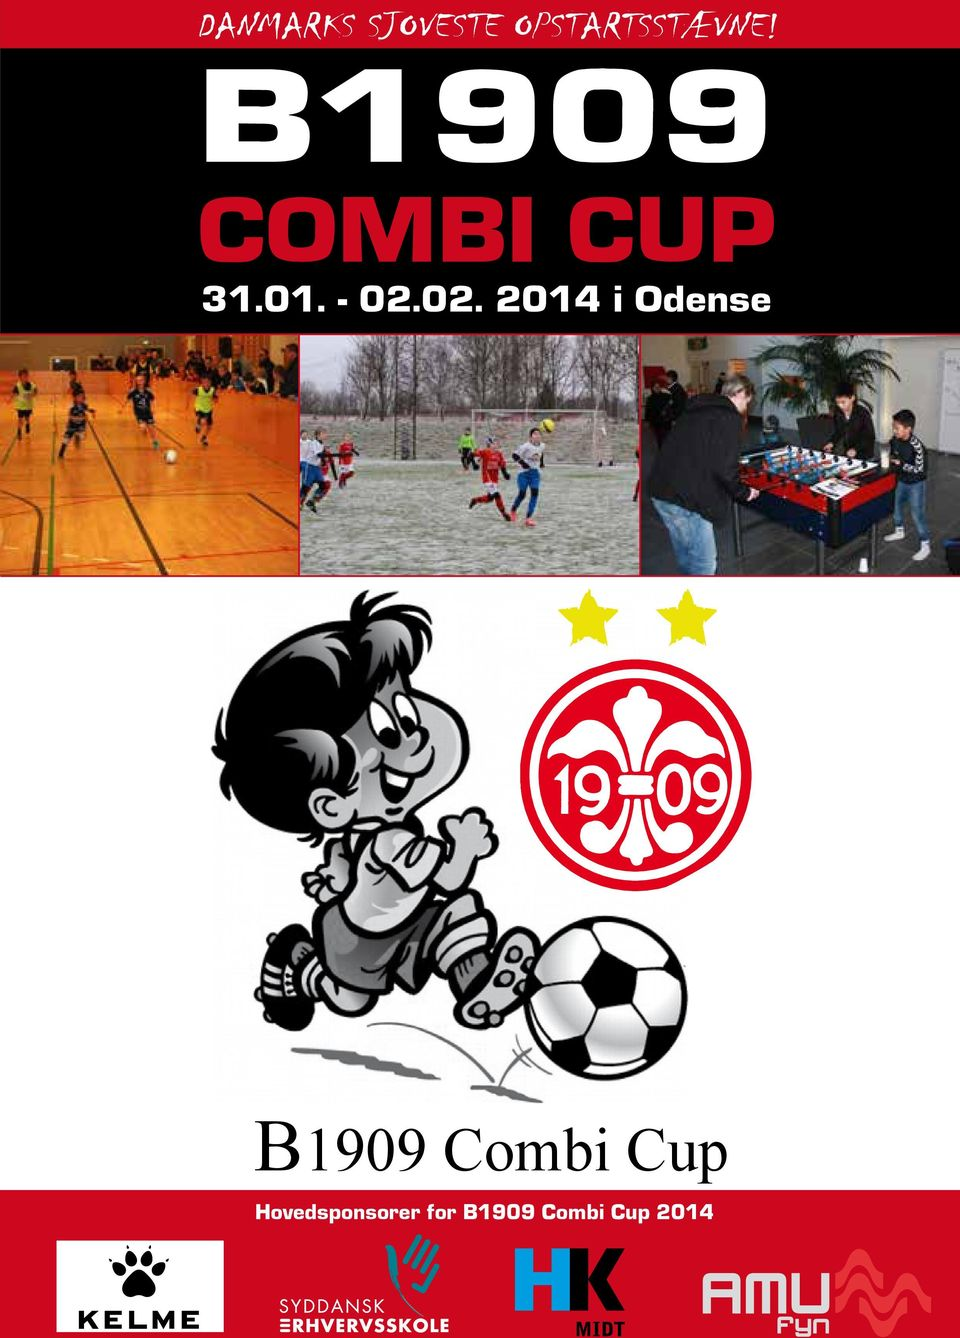 02. 2014 i Odense B1909 Elite Combi Cup